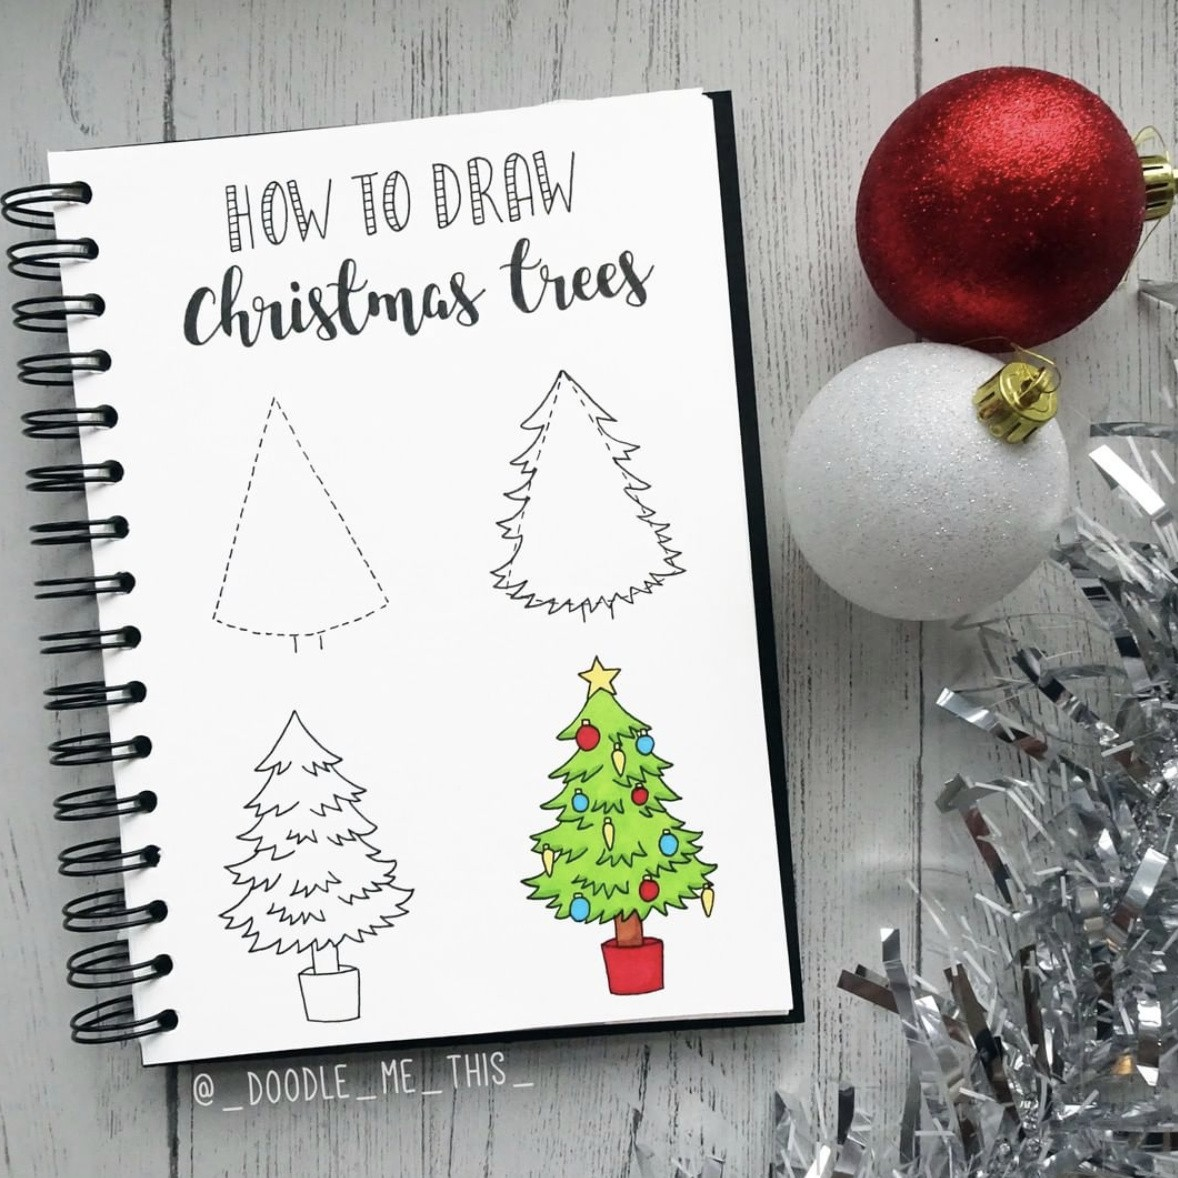 How to draw Christmas stuff step by step